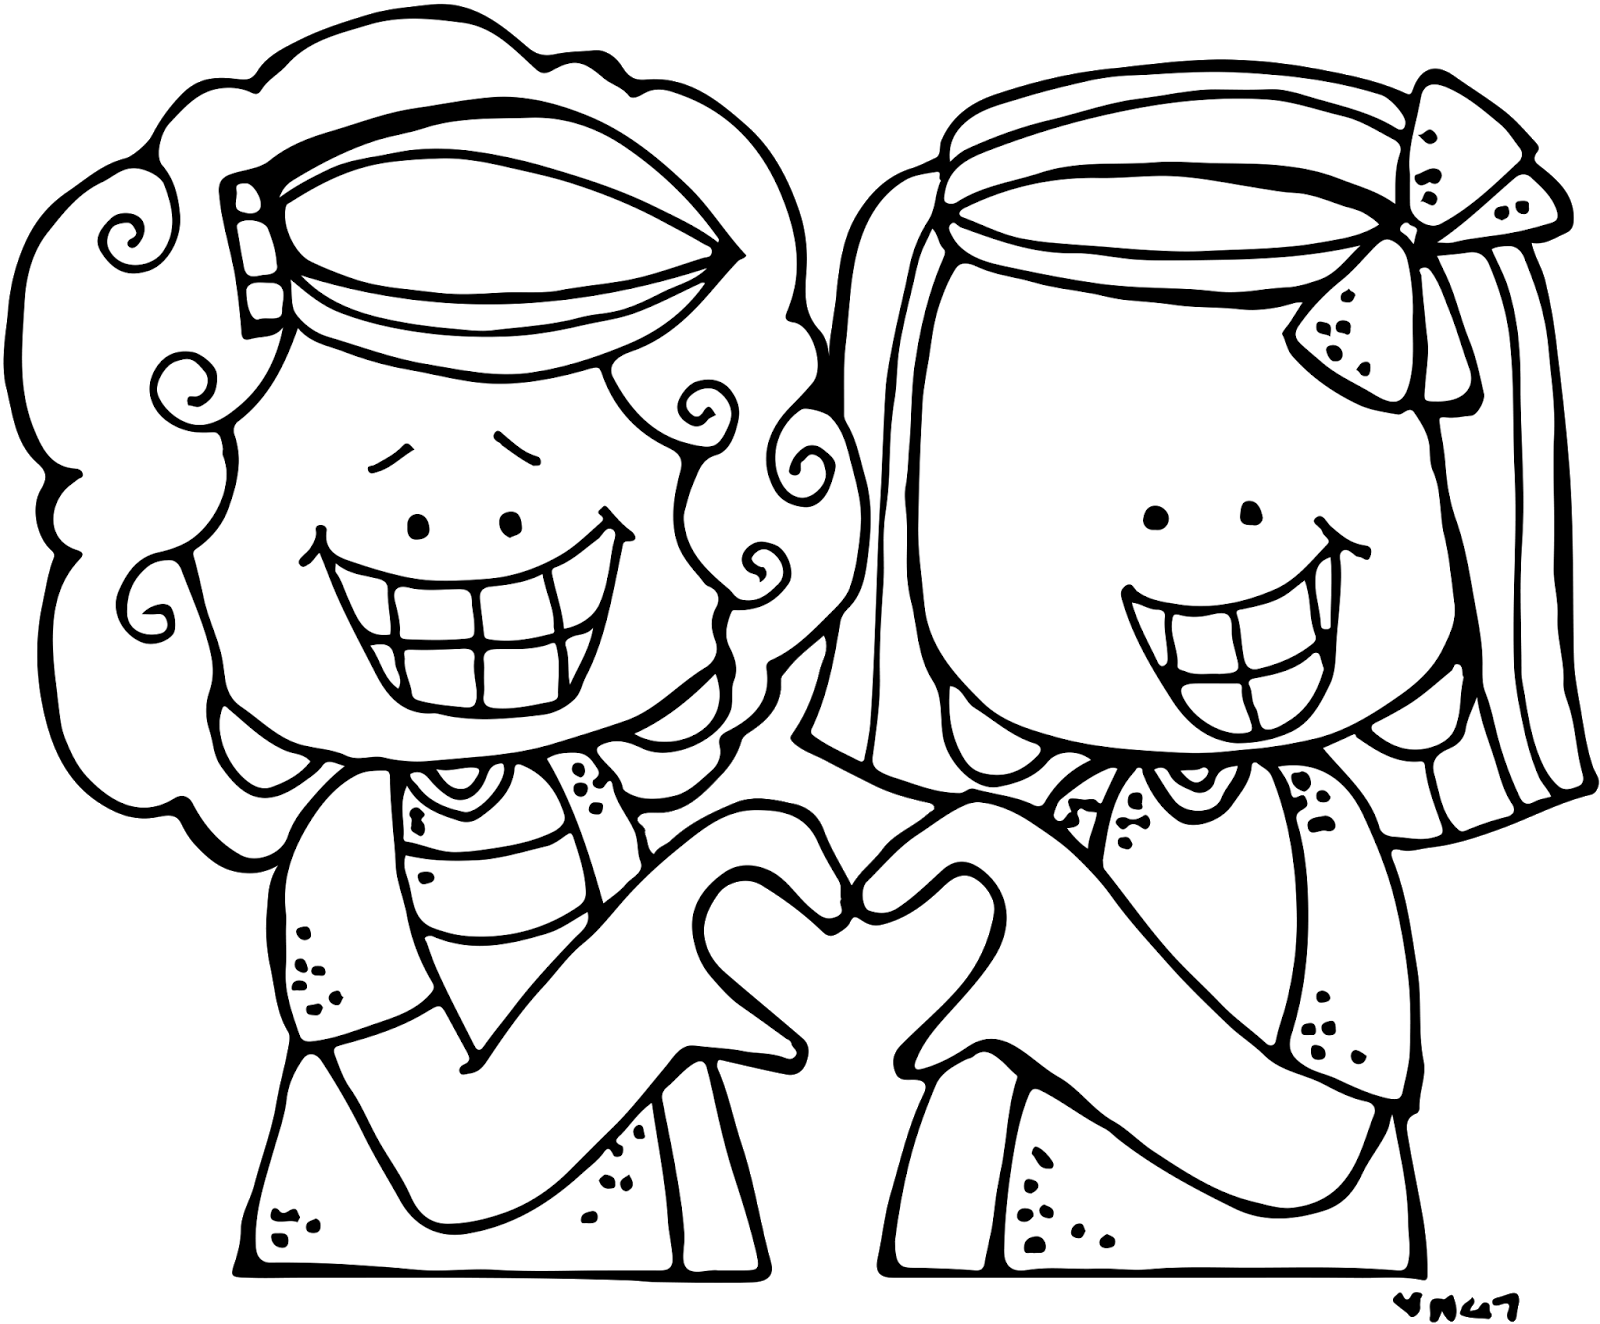 Mittens clipart black and white. Melonheadz love everyone free